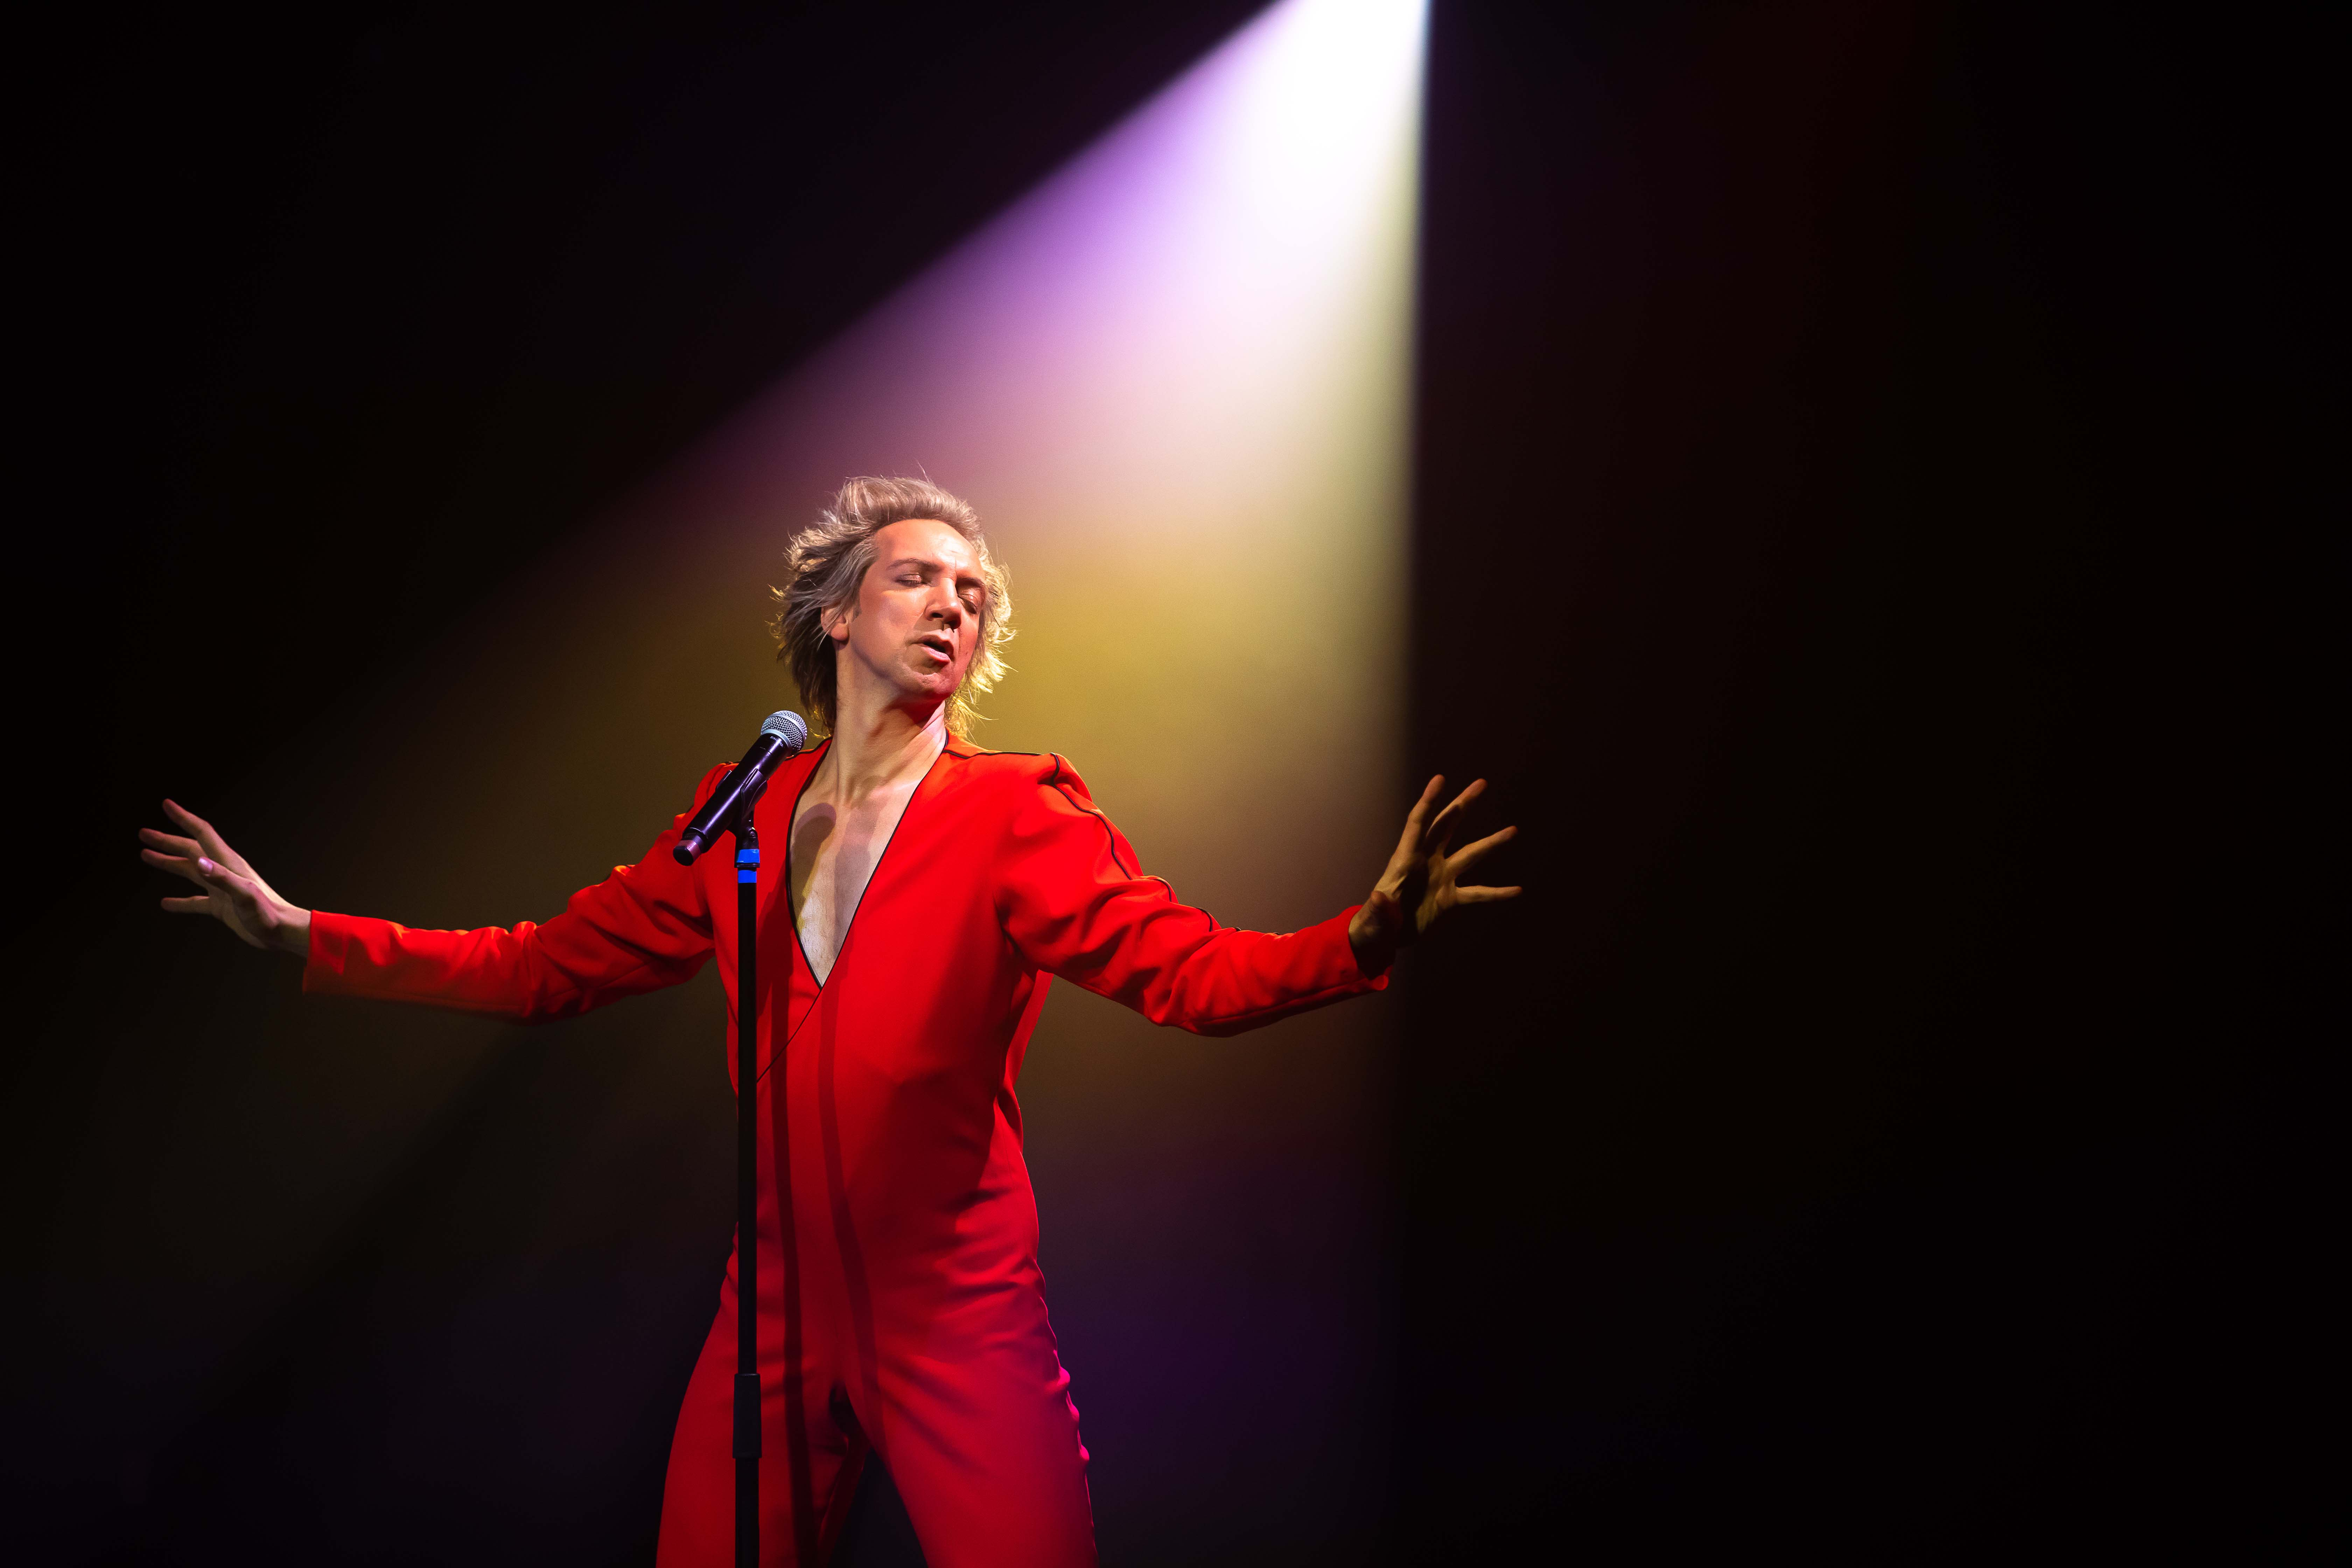 a performer wearing red standing in a spotlight